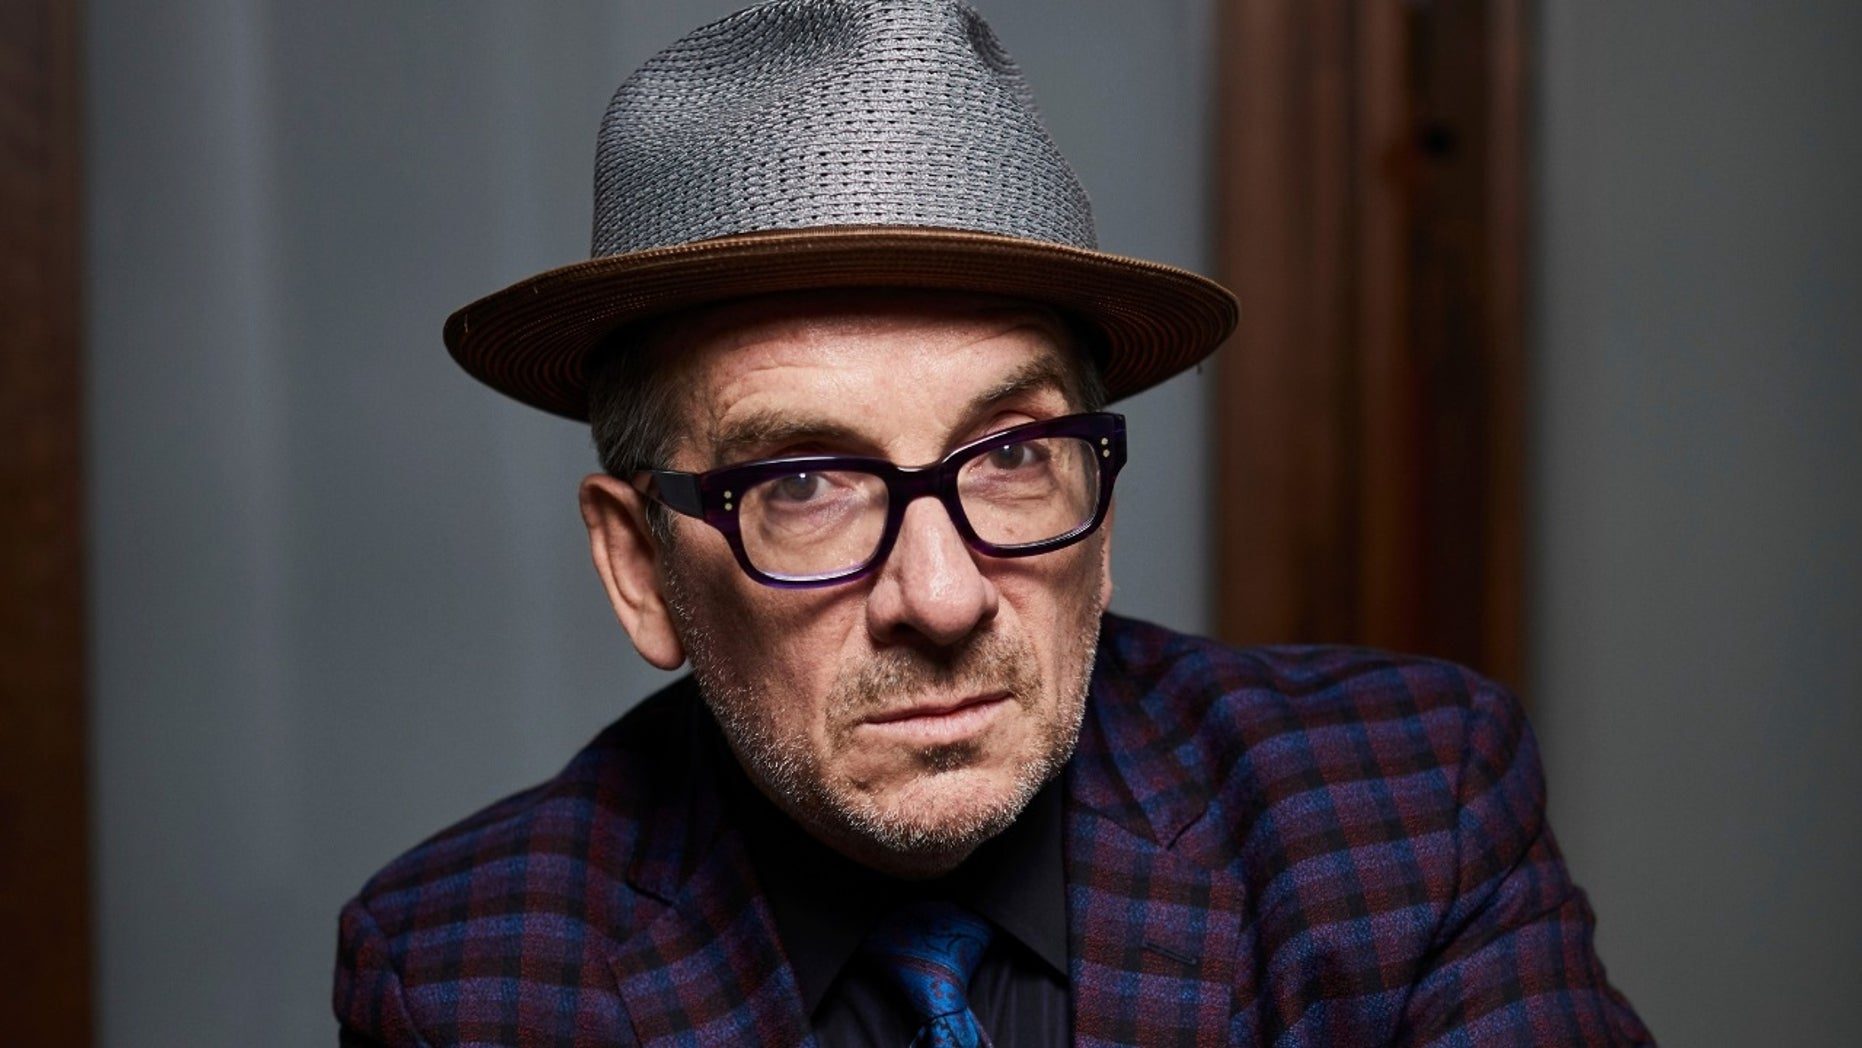 Elvis Costello slammed reports that stated he was struggling with cancer.